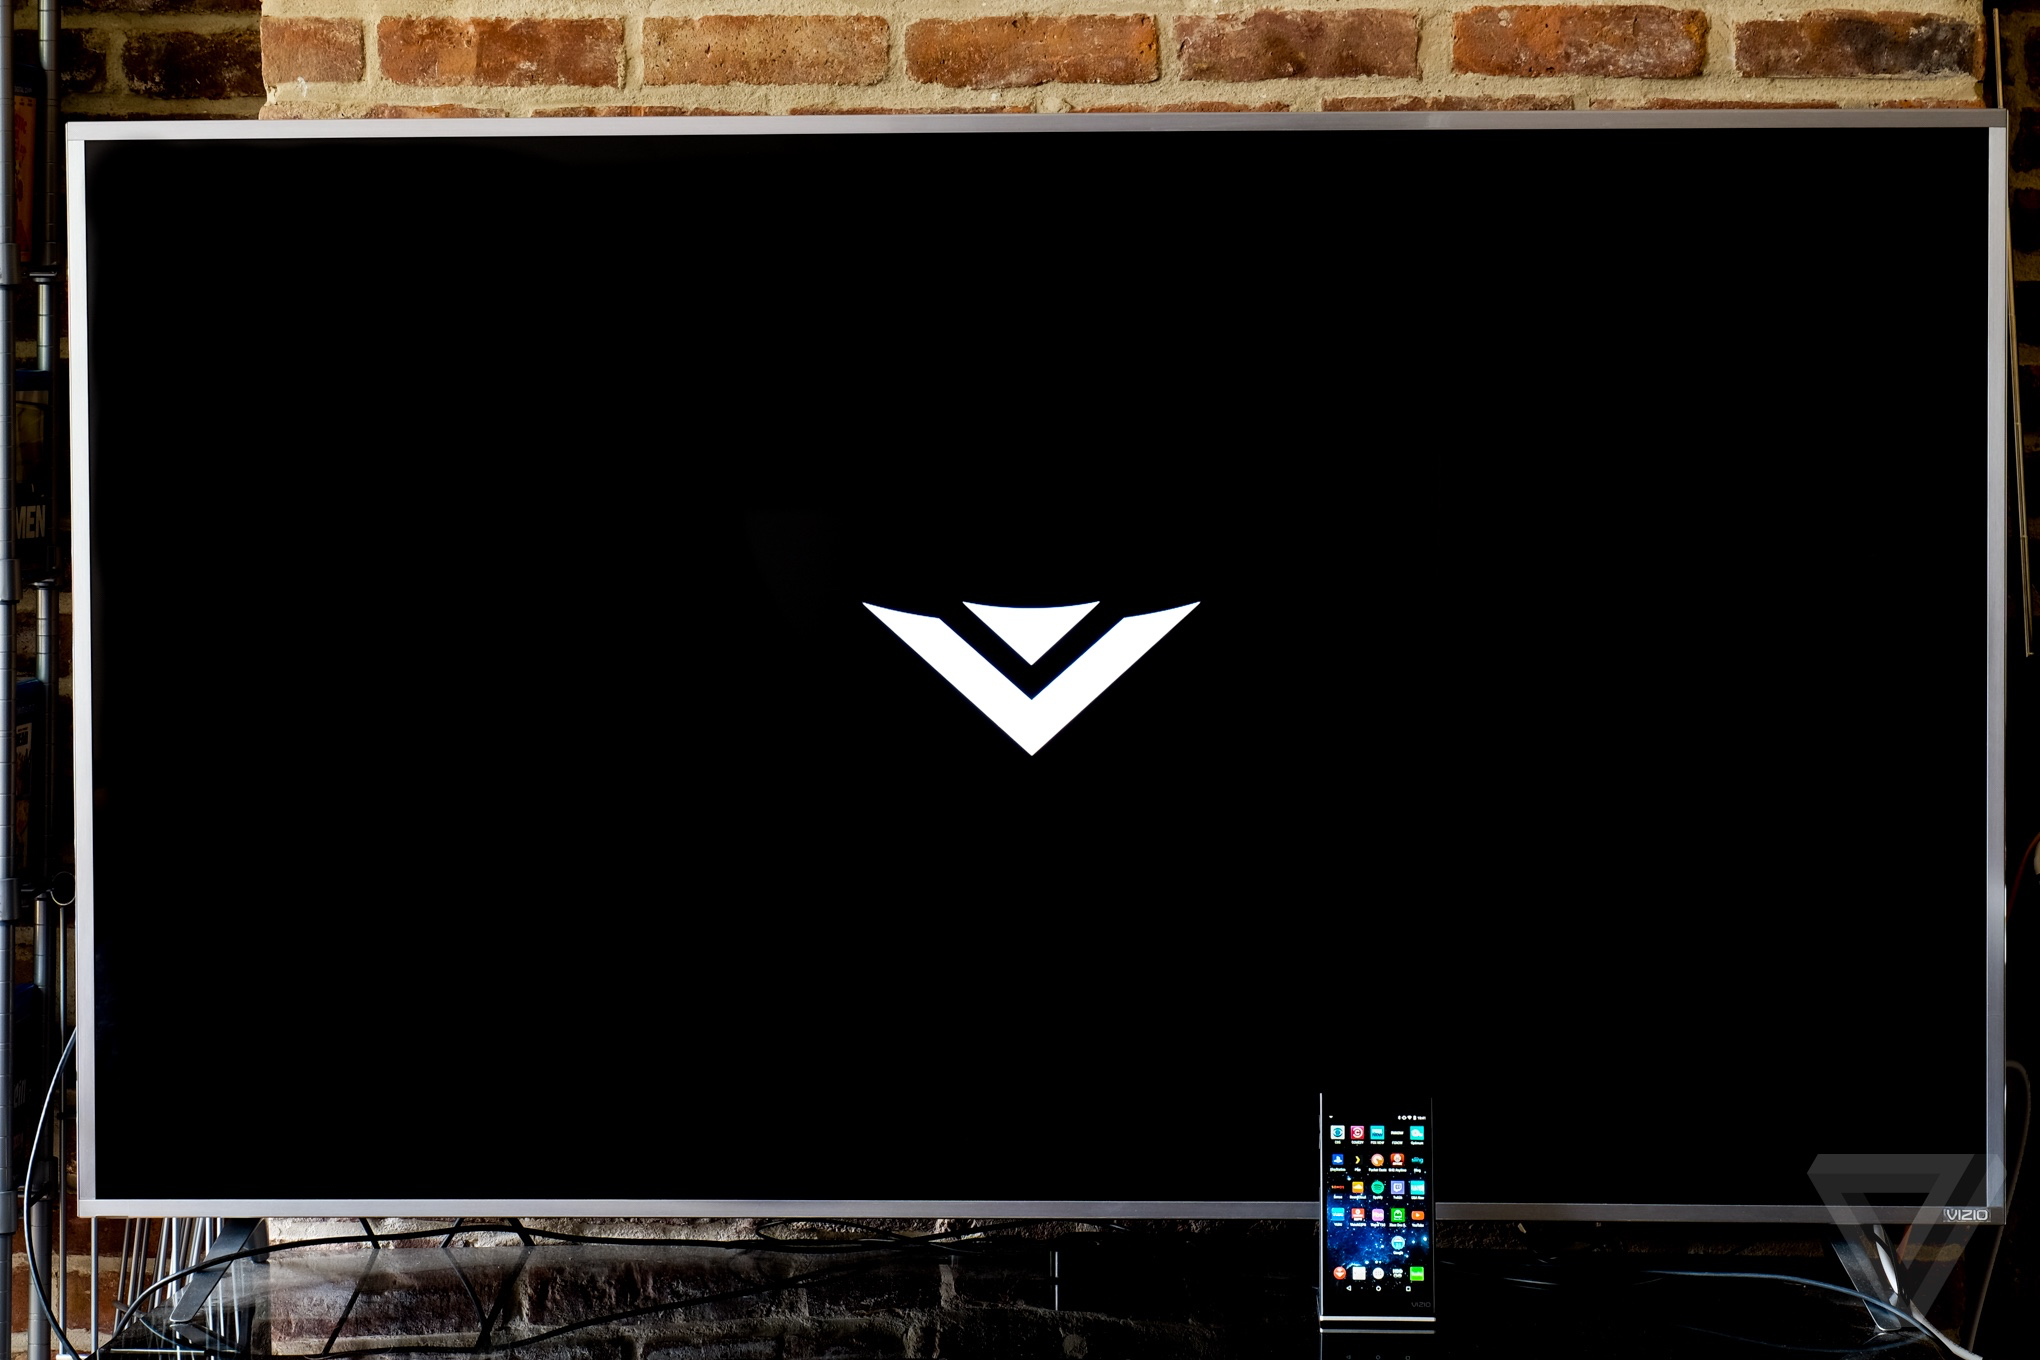 Vizio P-Series review: an incredible 4K TV and showcase for